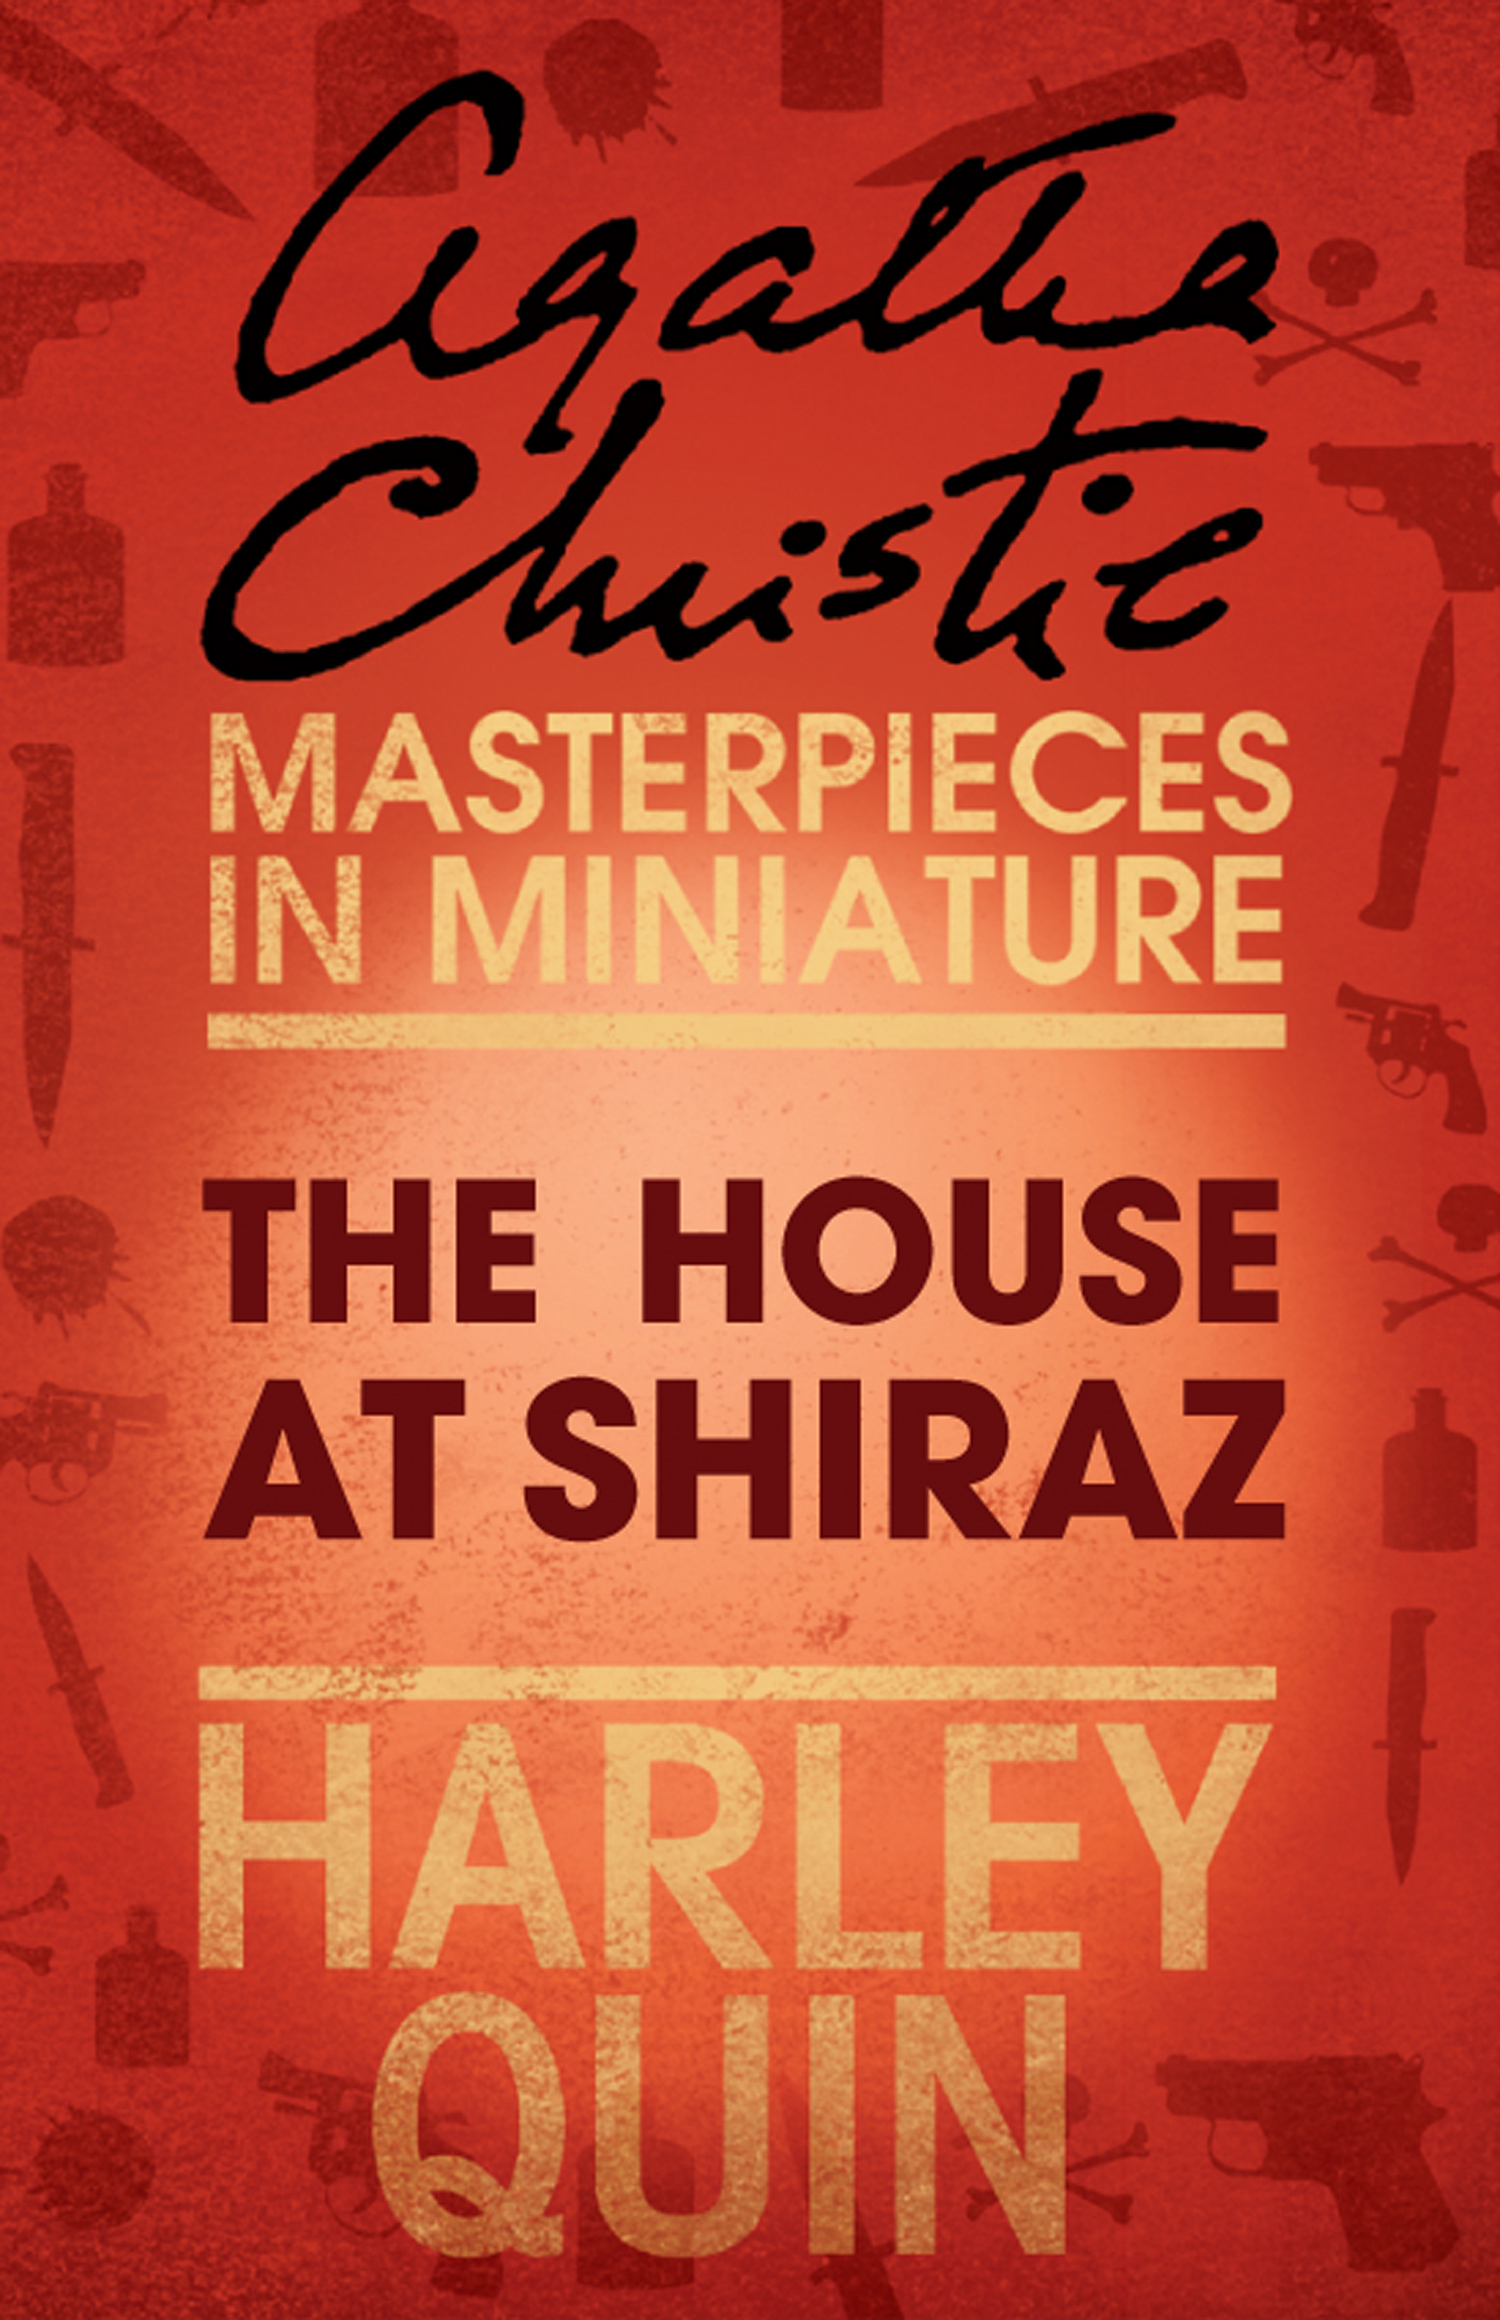 The House at Shiraz: An Agatha Christie Short Story